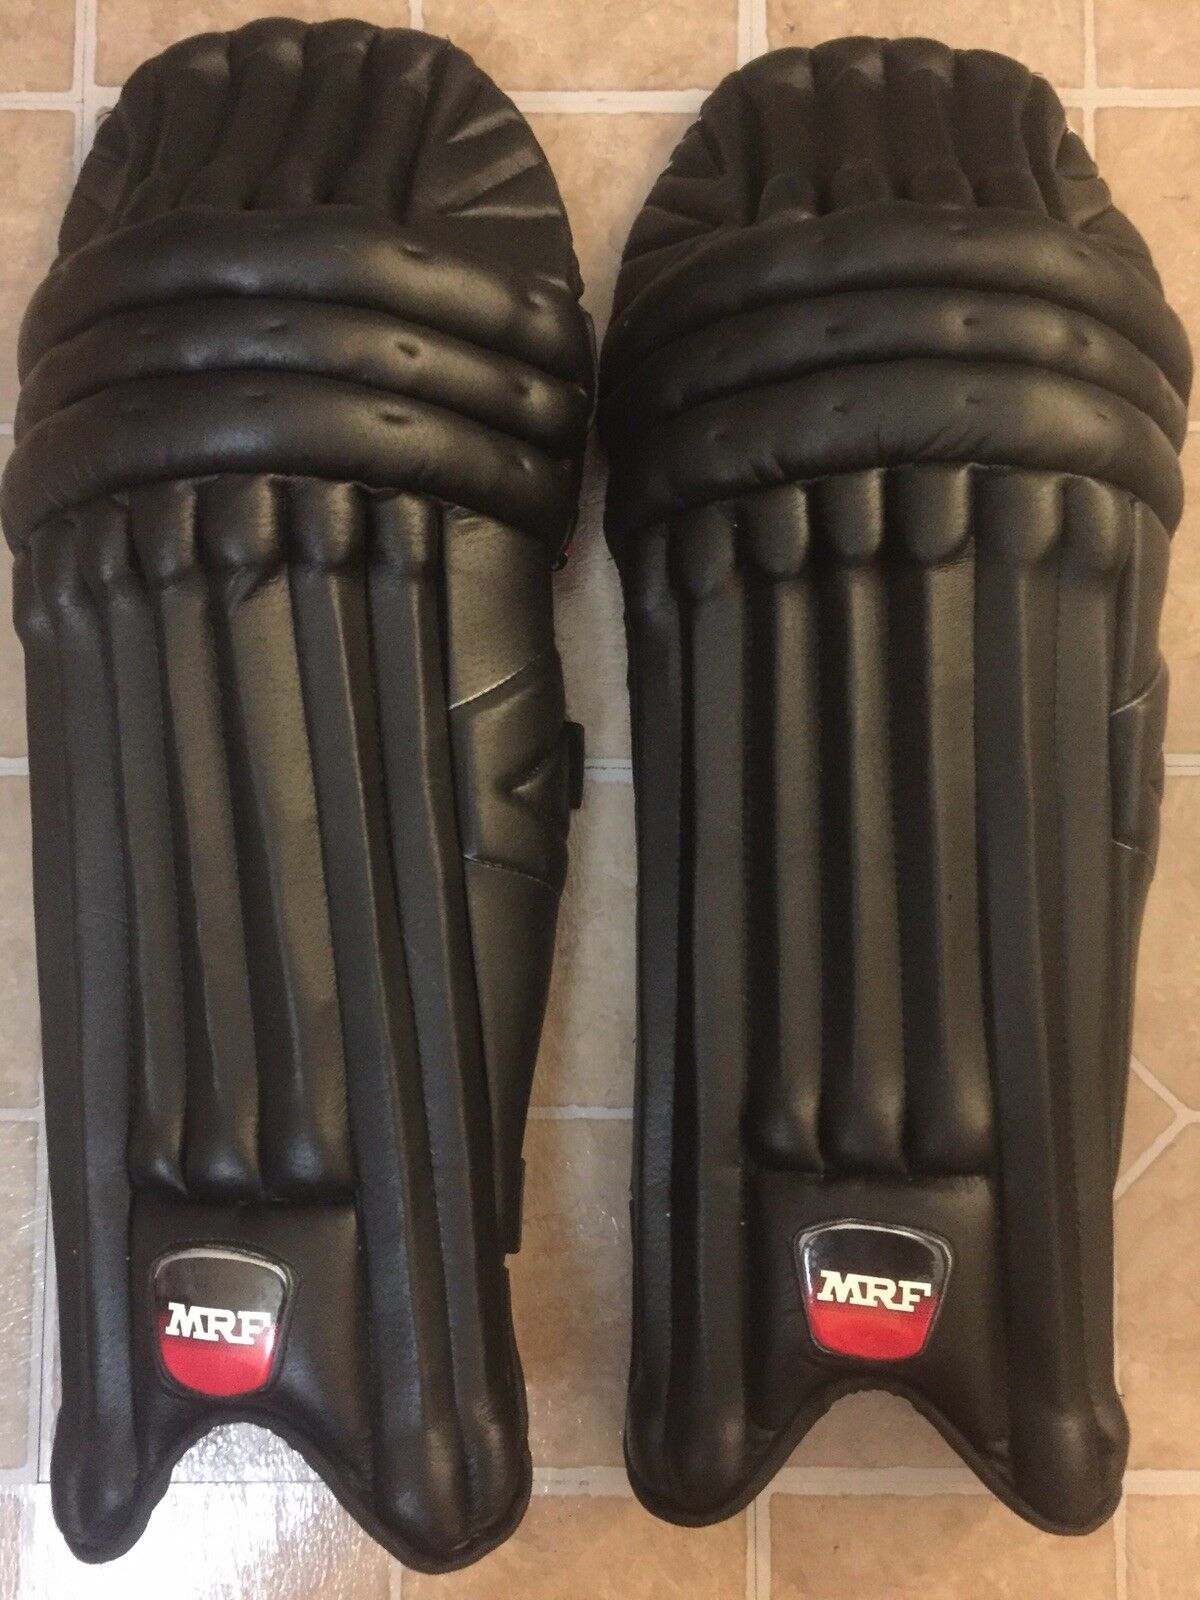 Mrf Cricket Batting Pads ColGoldt - Light Weight Leg Guards (schwarz blau)